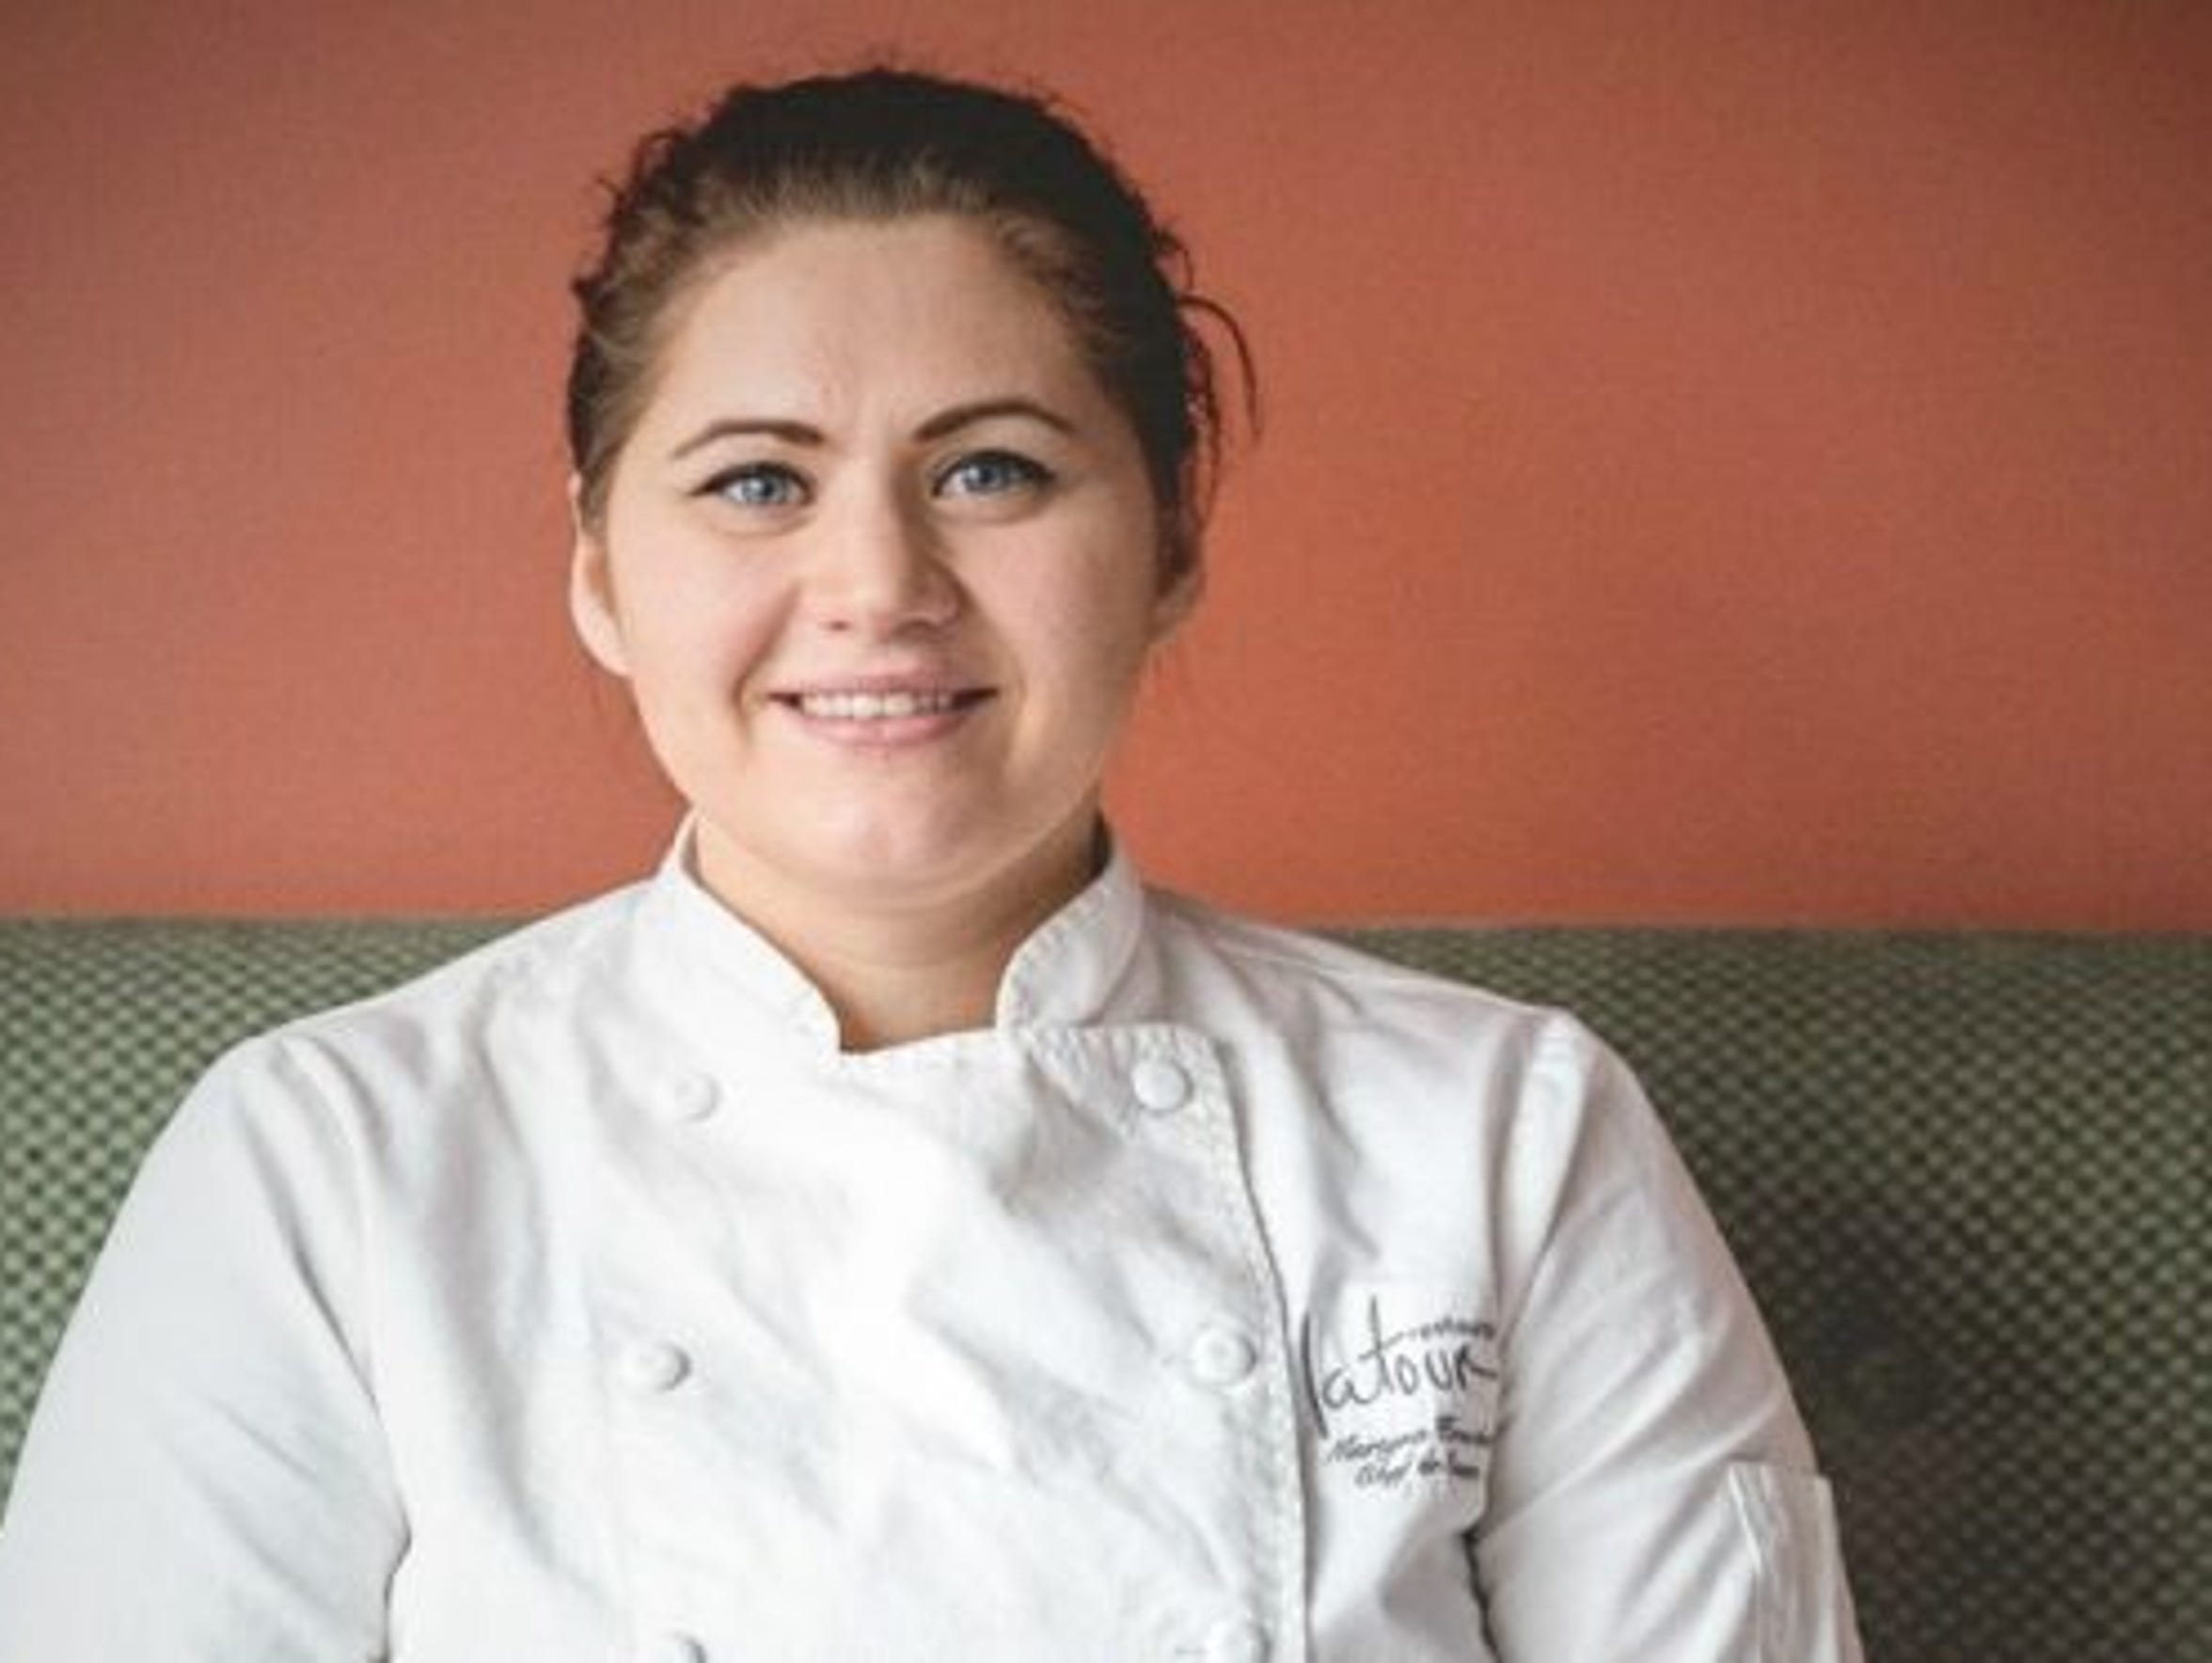 Martyna Krowicka is the new chef de cuisine of Felina